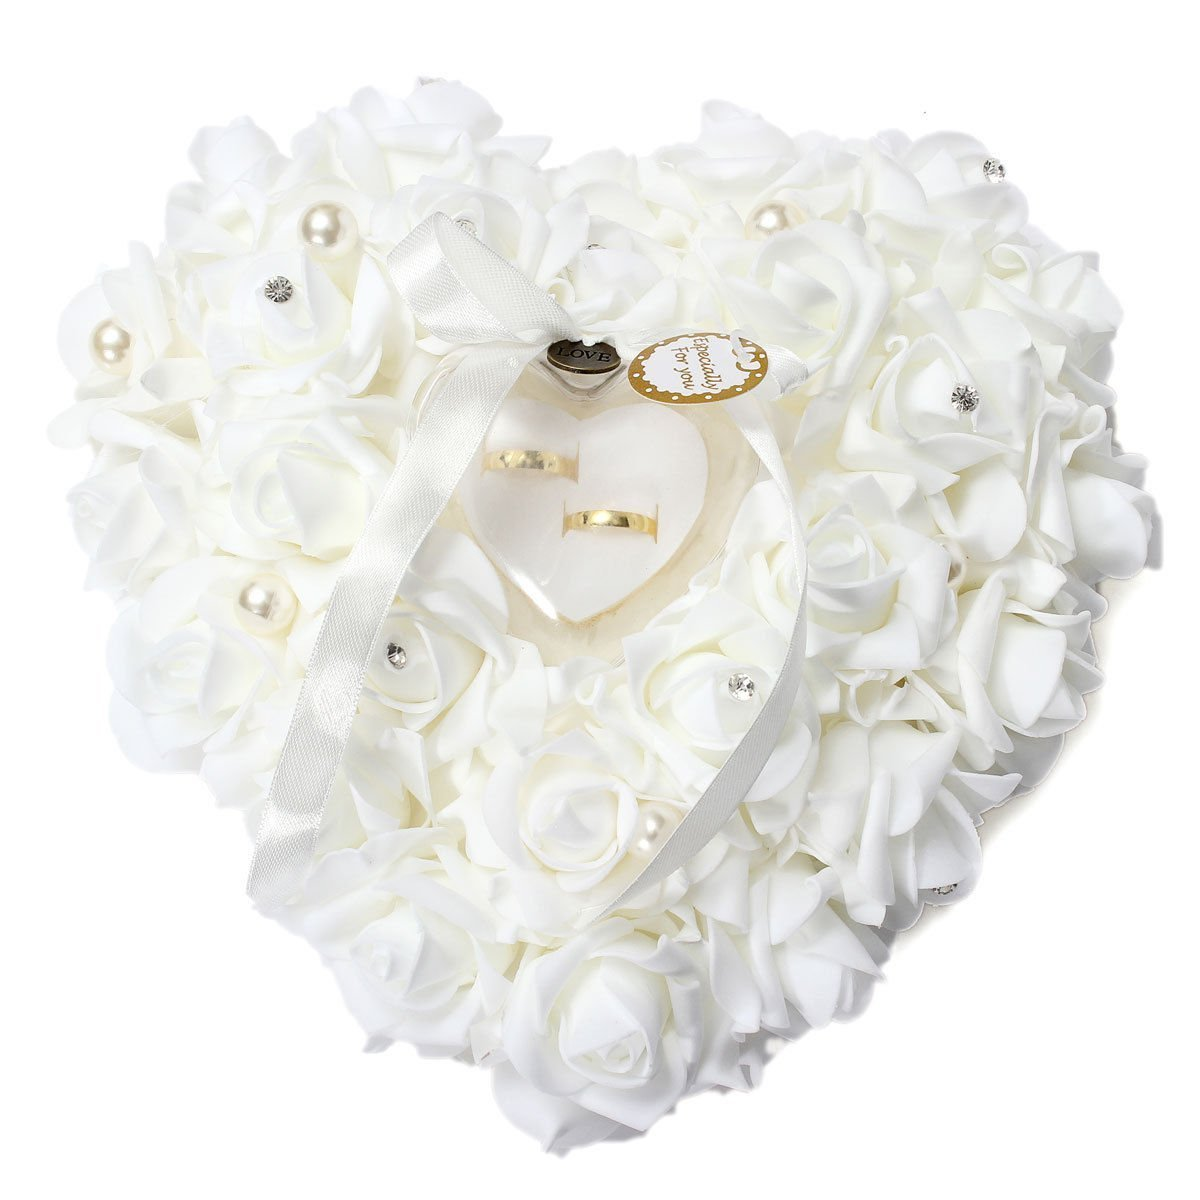 Ring Pillow Holder with Pearls Heart Shaped Ring Case Jewelry Holder Wedding Supplies Wedding Ring Box